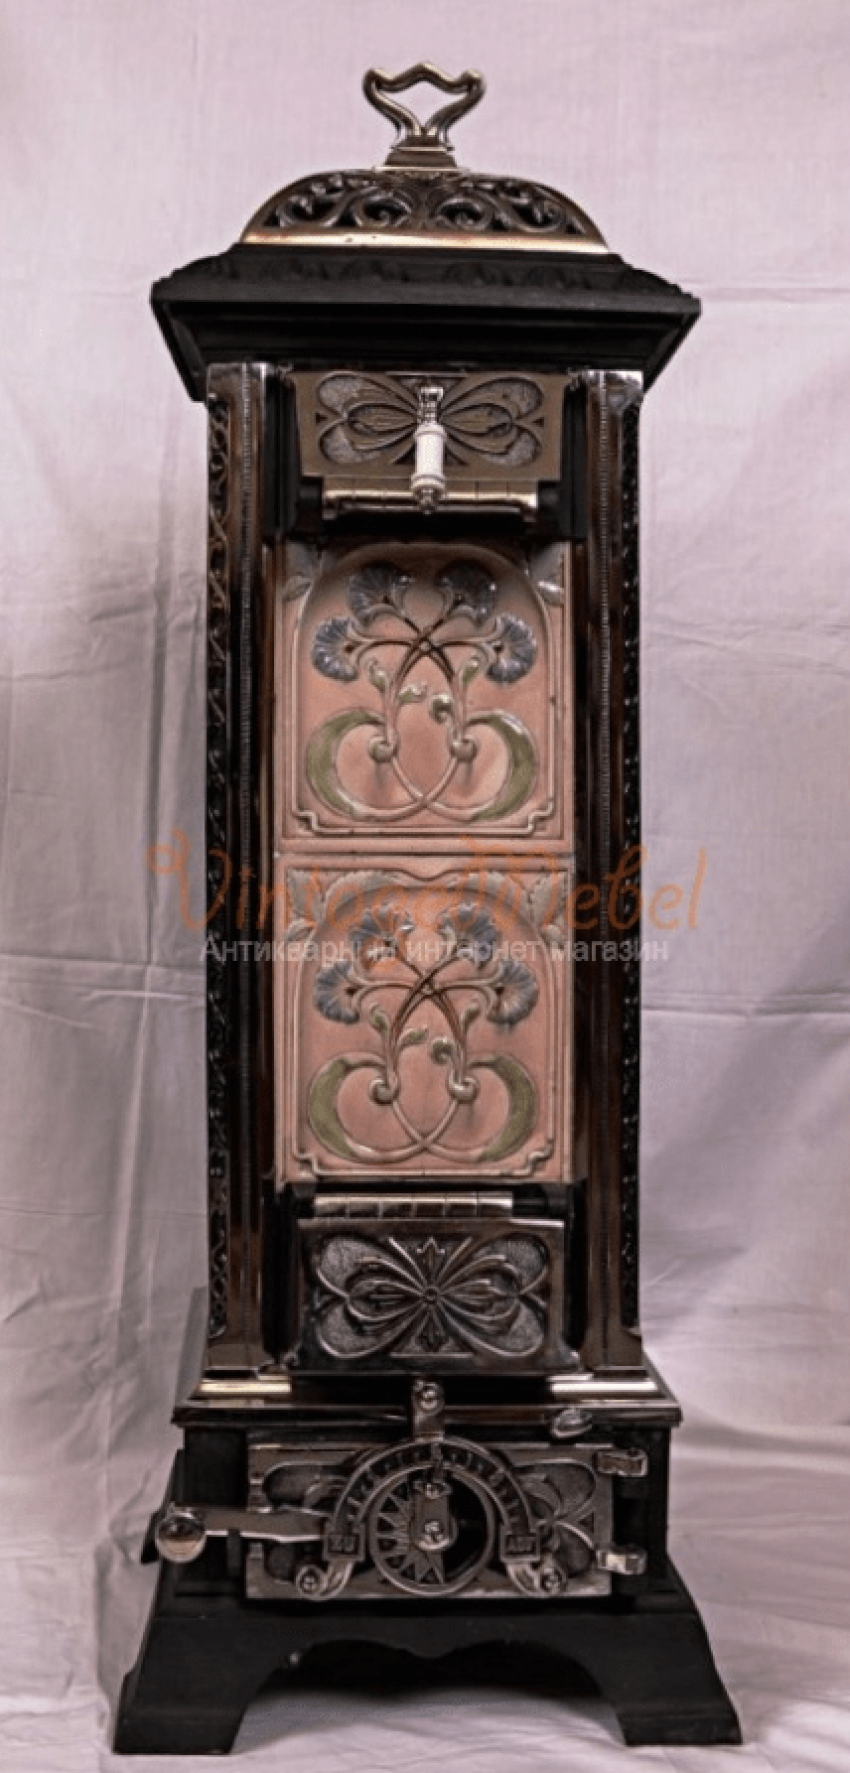 An antique stove. Germany 1900год - photo 2